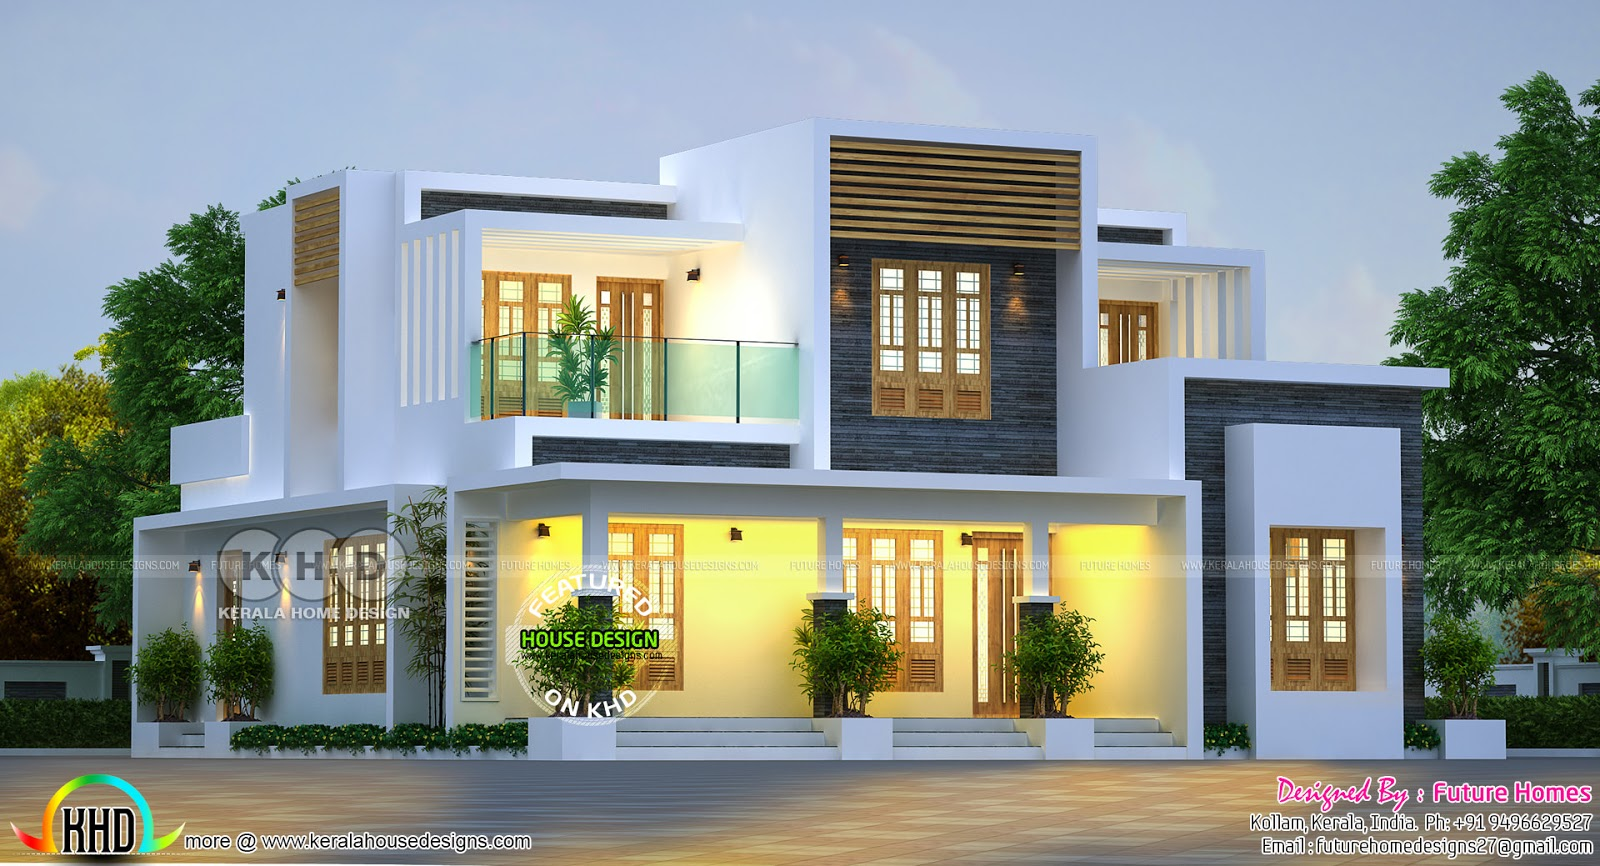 204 sq m contemporary home kerala home design and floor plans